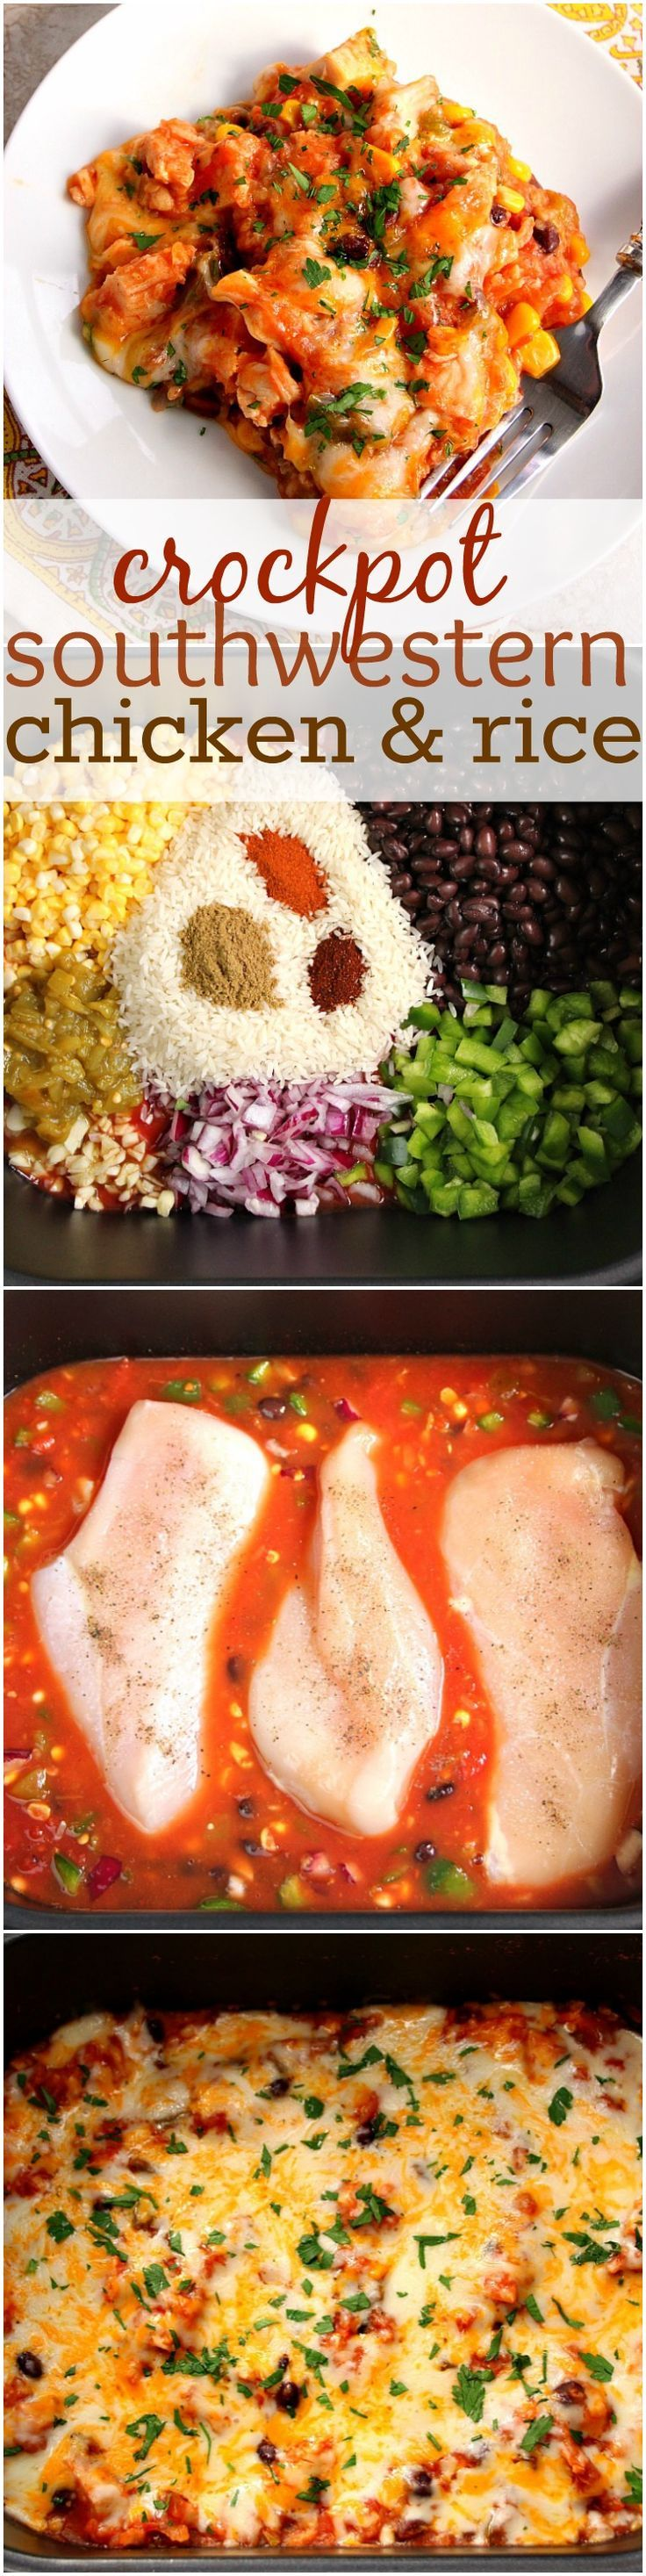 Southwestern Crock-Pot Chicken and Rice recipe – cheesy chicken, vegetable and rice dish made in a slow cooker for an easy weeknight dinner. Peppers, corn, beans and a good mix of spices add a Southwestern flair to a classic. #sponsored #ad